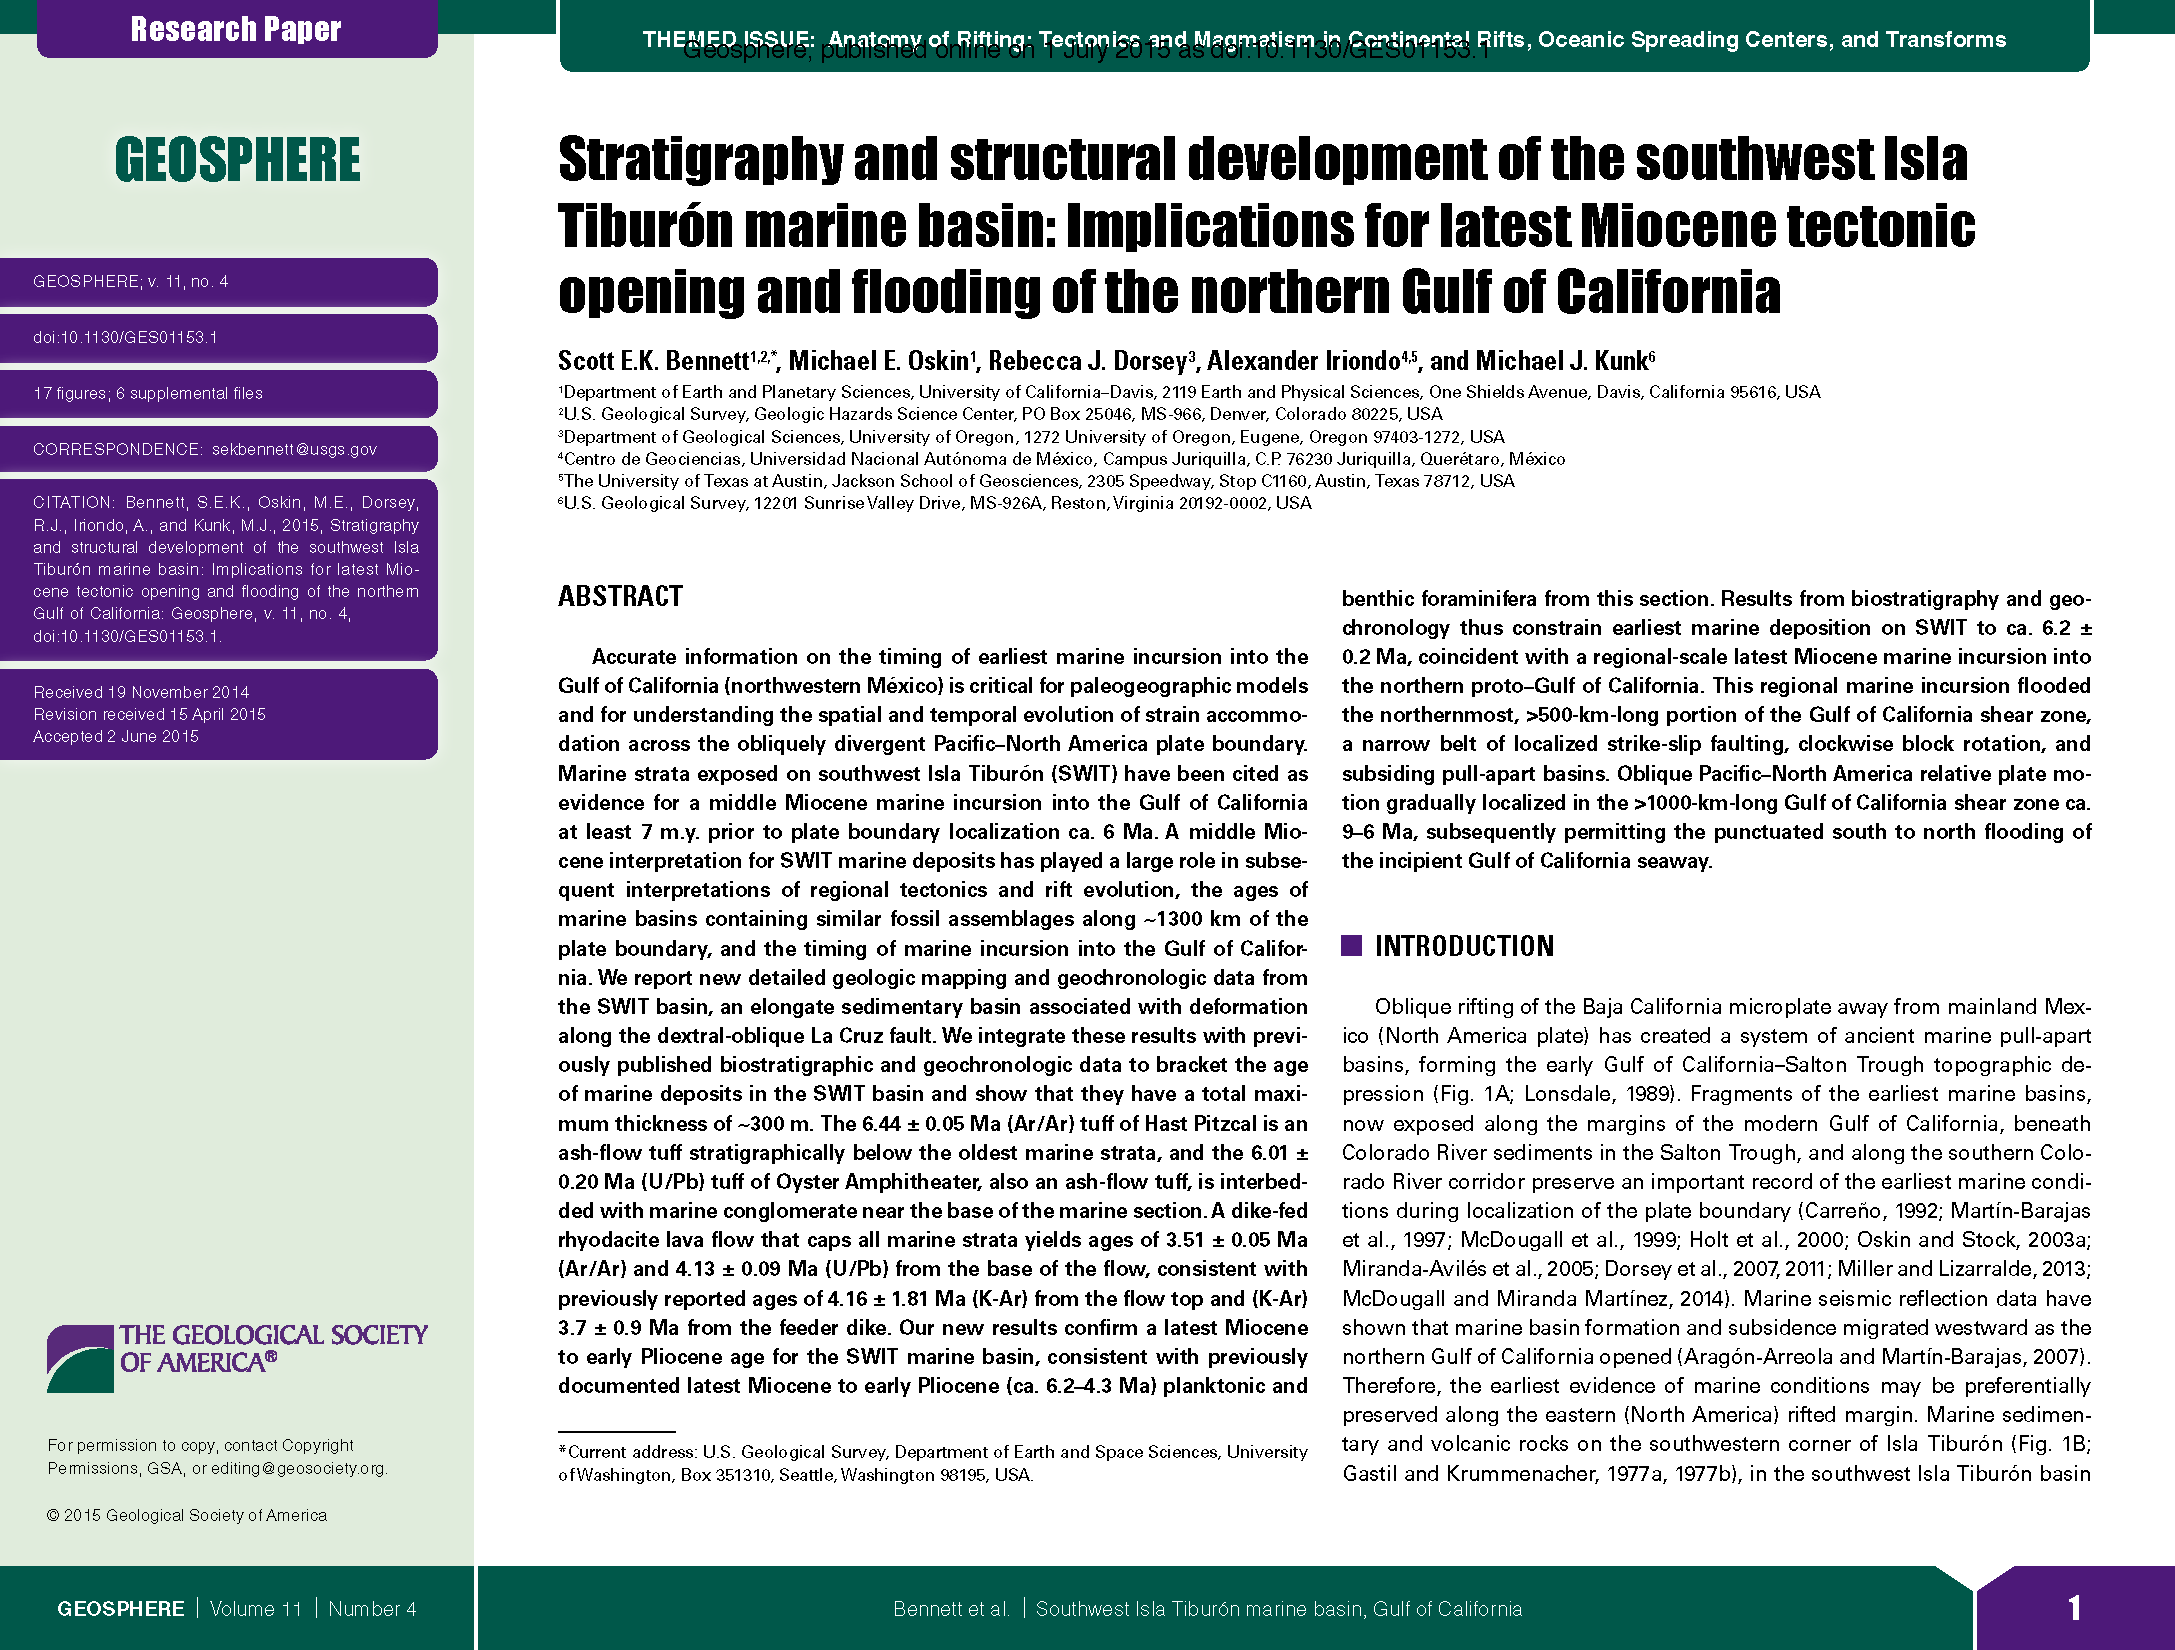 Benentt etal_Stratigraphy and structural development of the southwest Isla Tiburón marine basin- Implications for latest Miocene tectonic opening and flooding of the northern Gulf of CA_Geosphere_2015.png